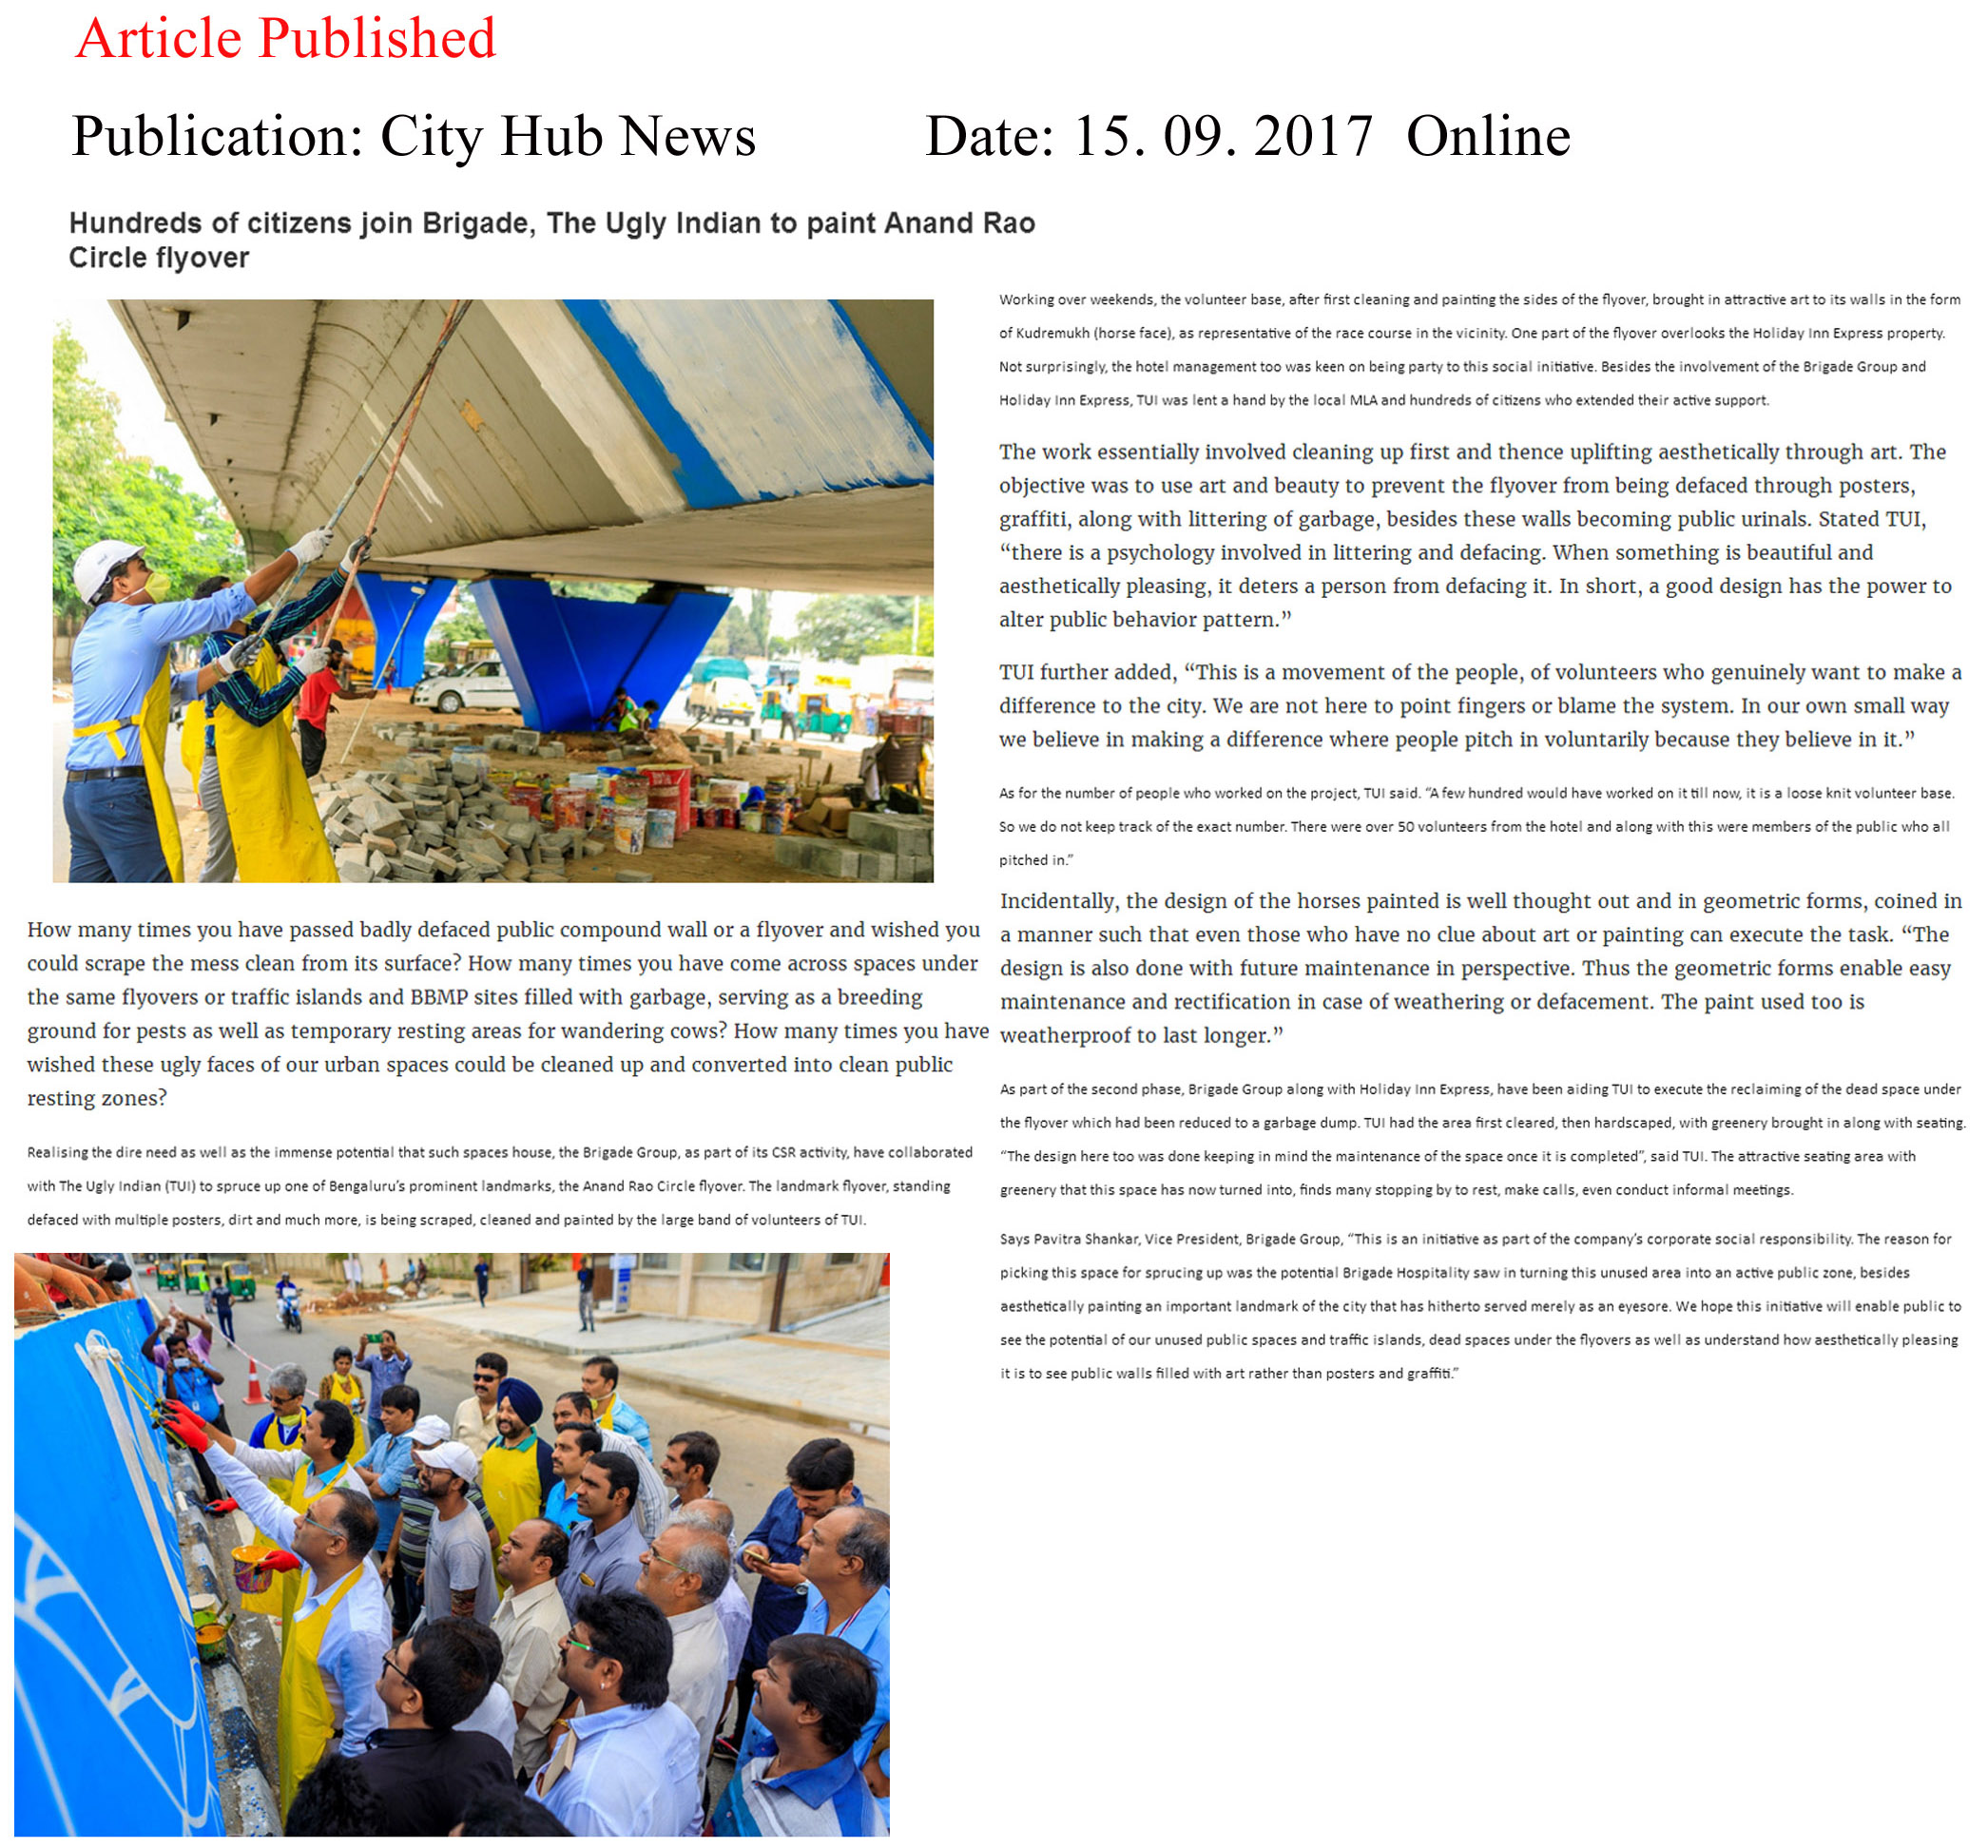 Hundreds of citizens join Brigade, The Ugly Indian to paint Anand Rao Circle flyover—City Hub News–Online